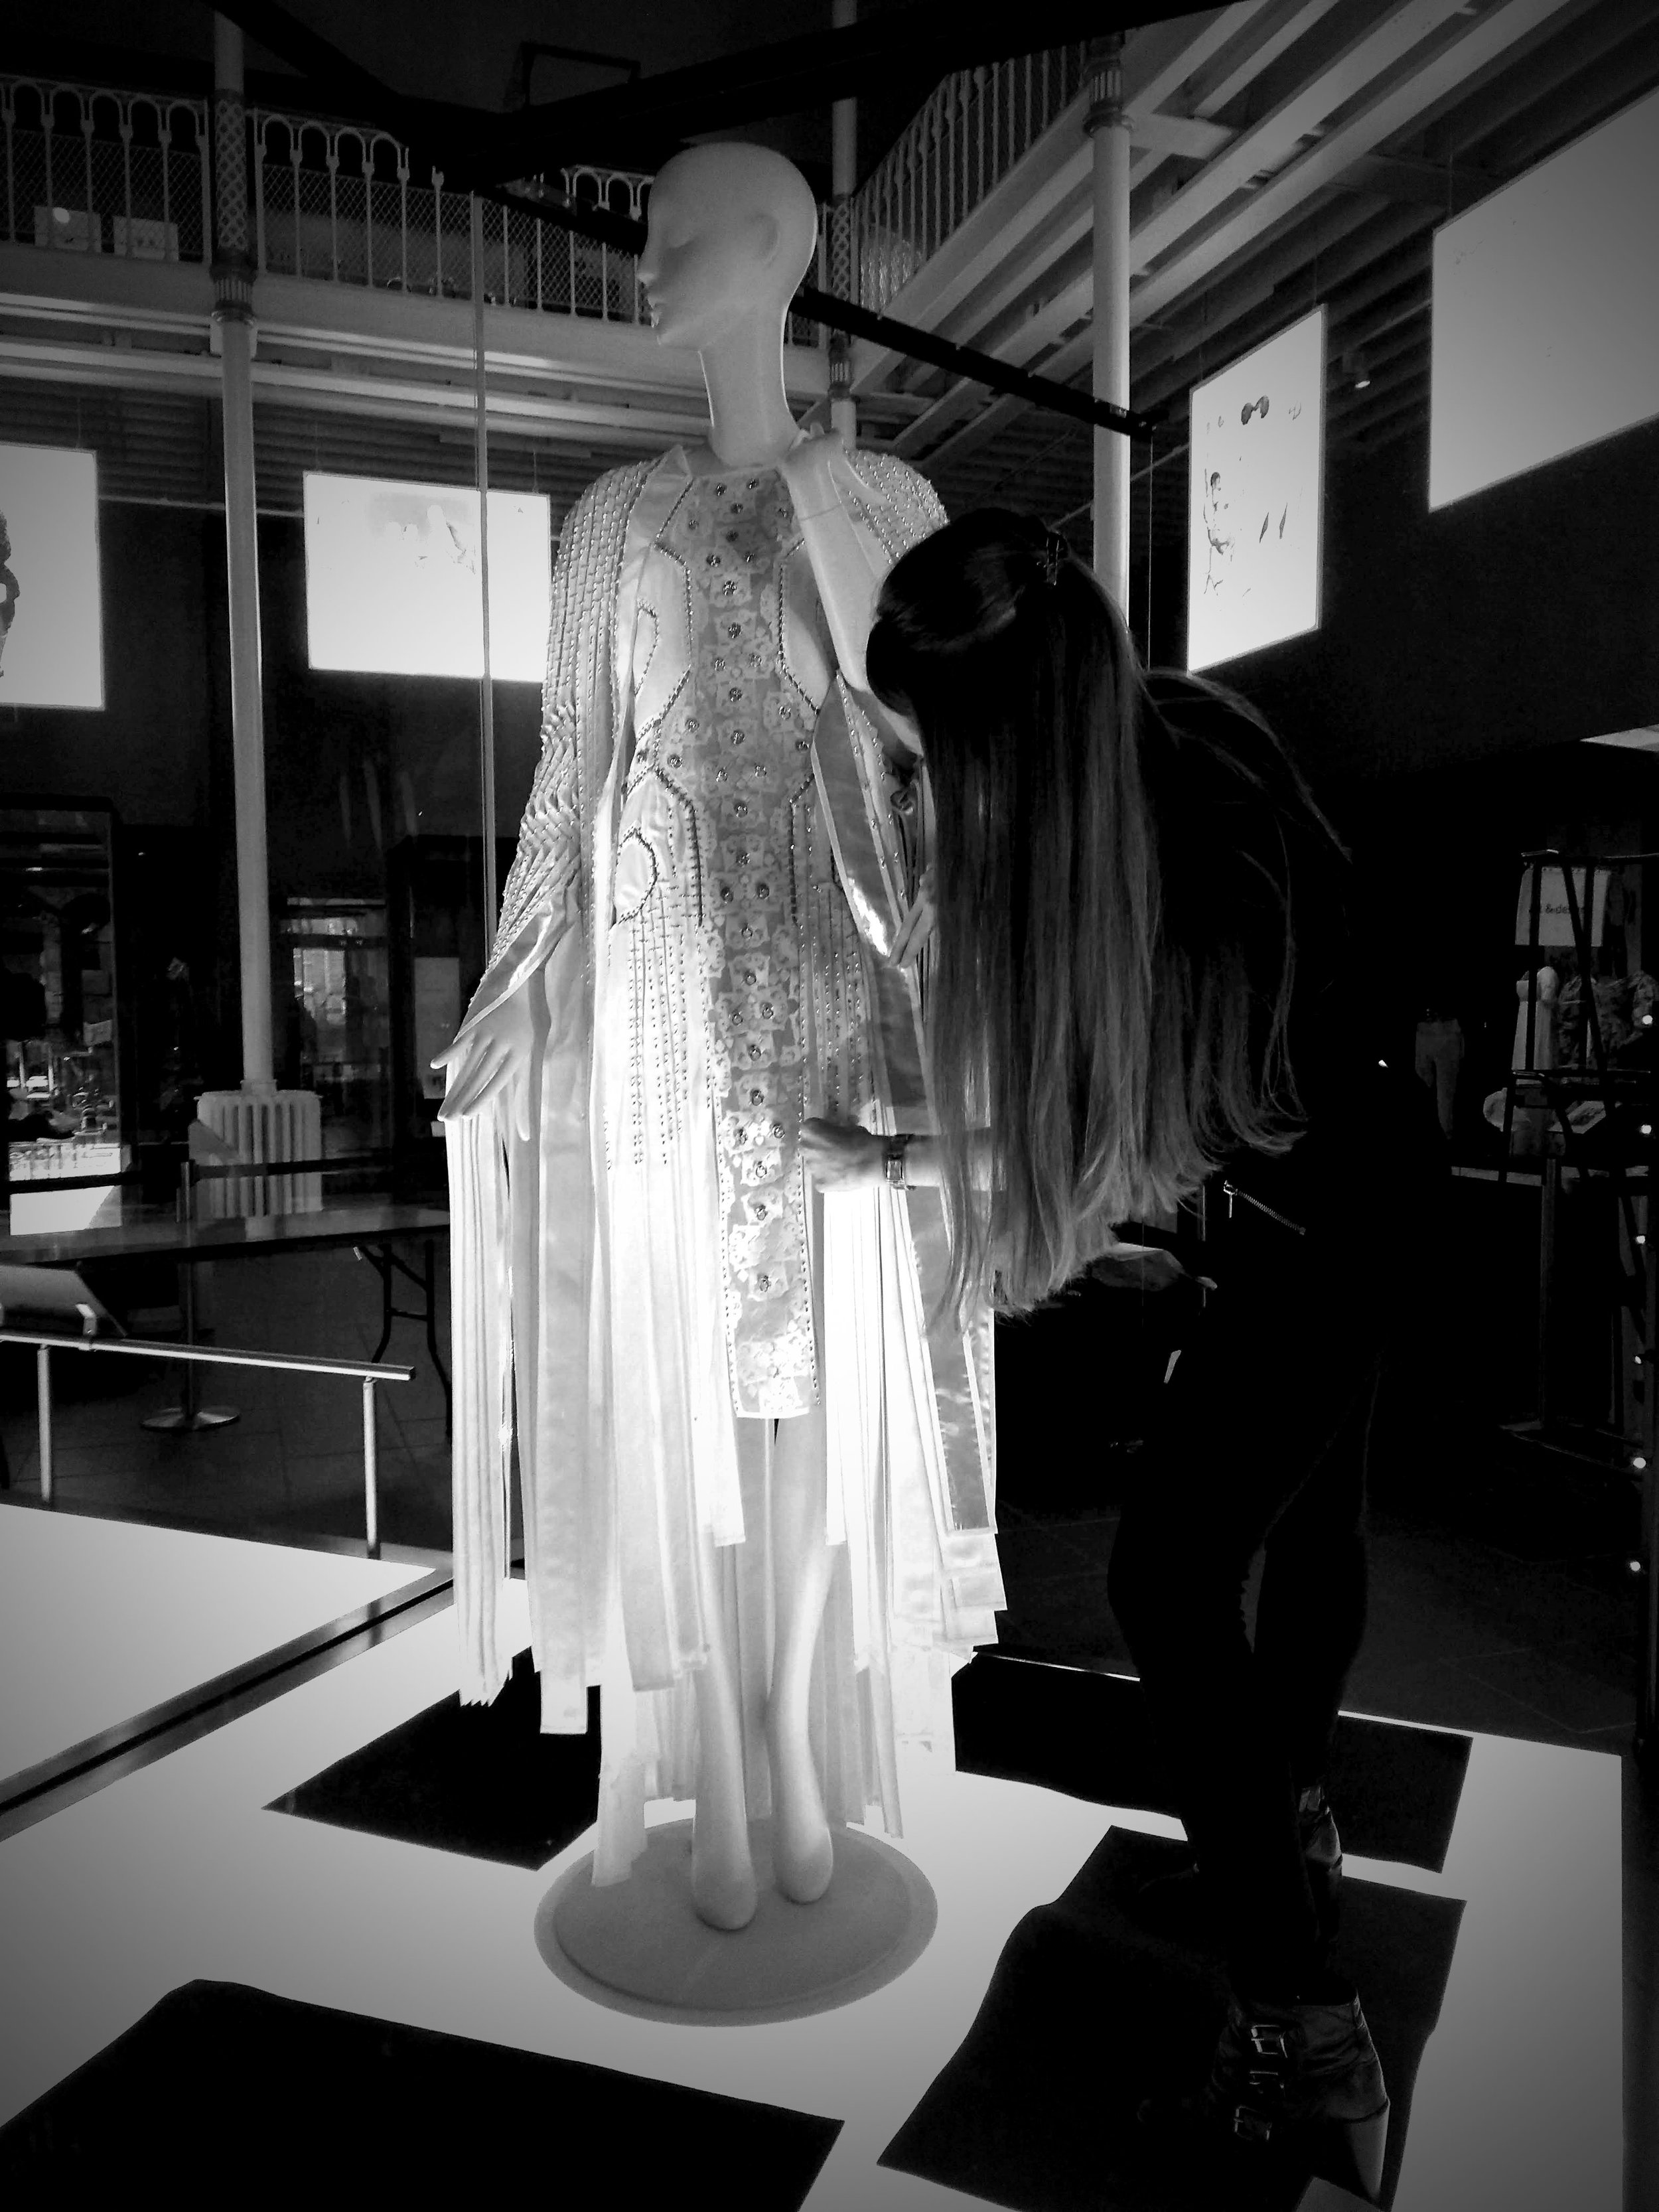 The Installation of The Florentine Dress at The National Museum of Scotland, June 2018.